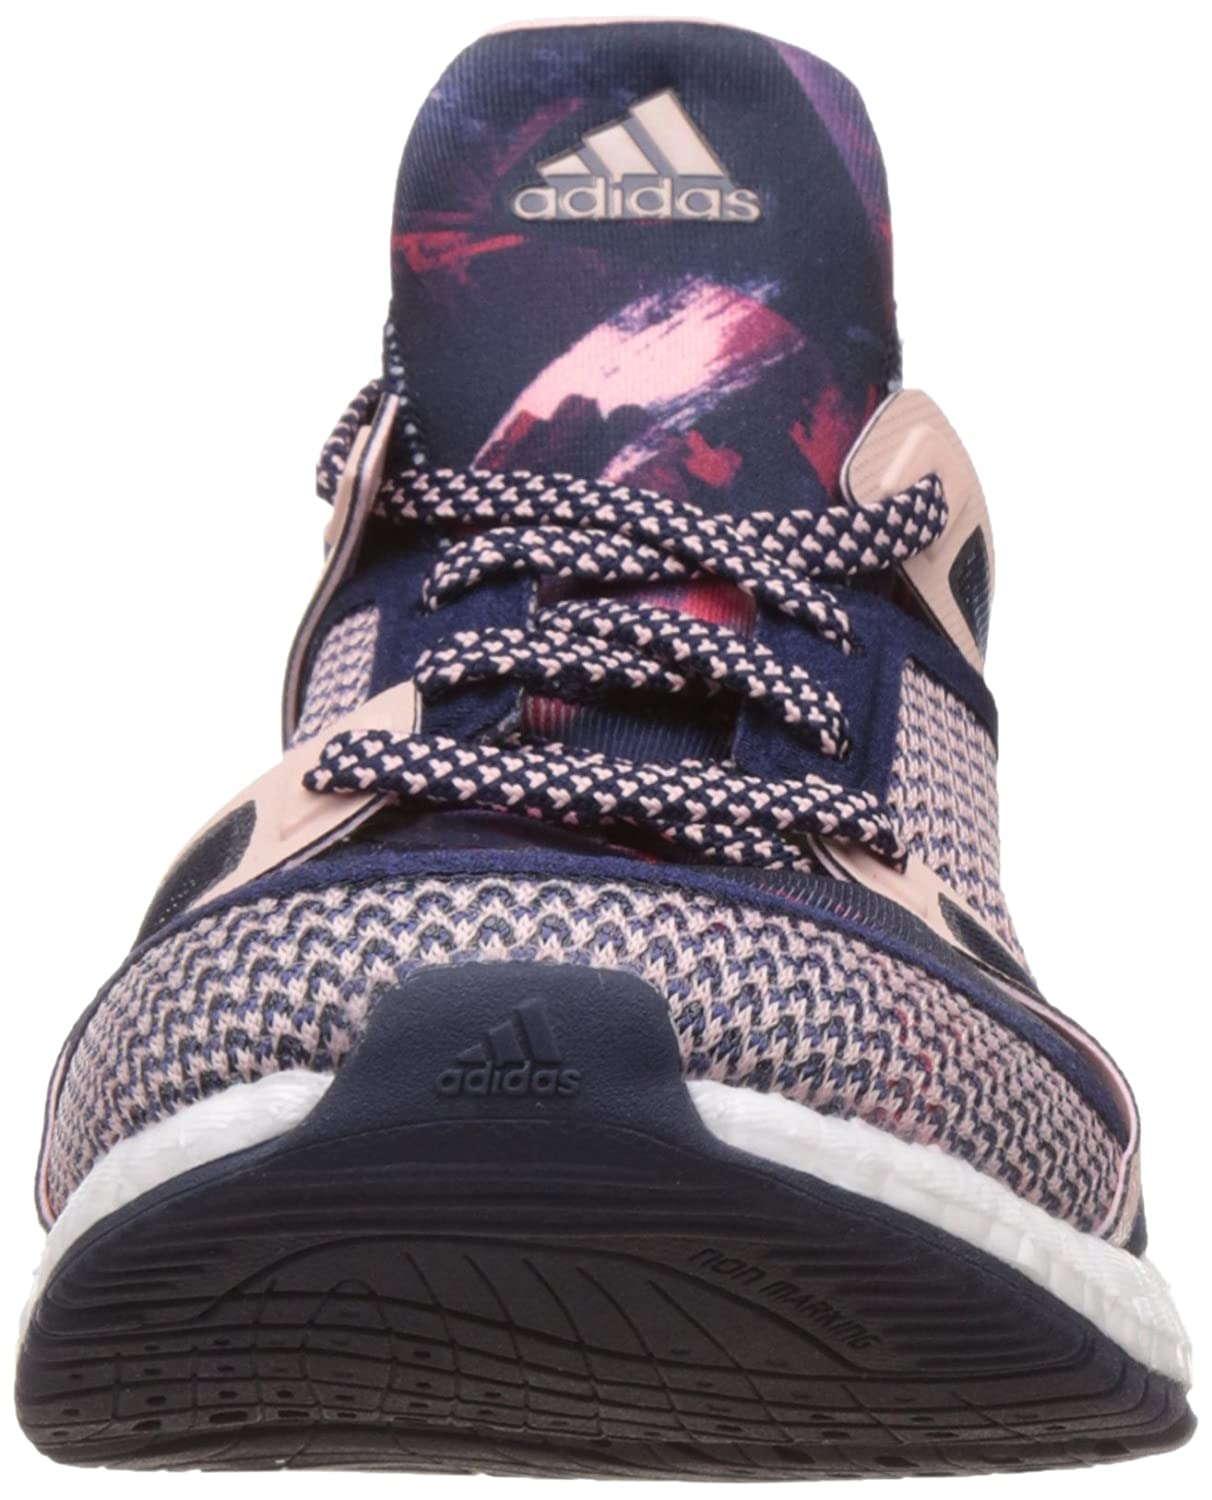 timeless design 89b06 333bf adidas Pure Boost X TR, Women s Trainers  Amazon.co.uk  Shoes   Bags